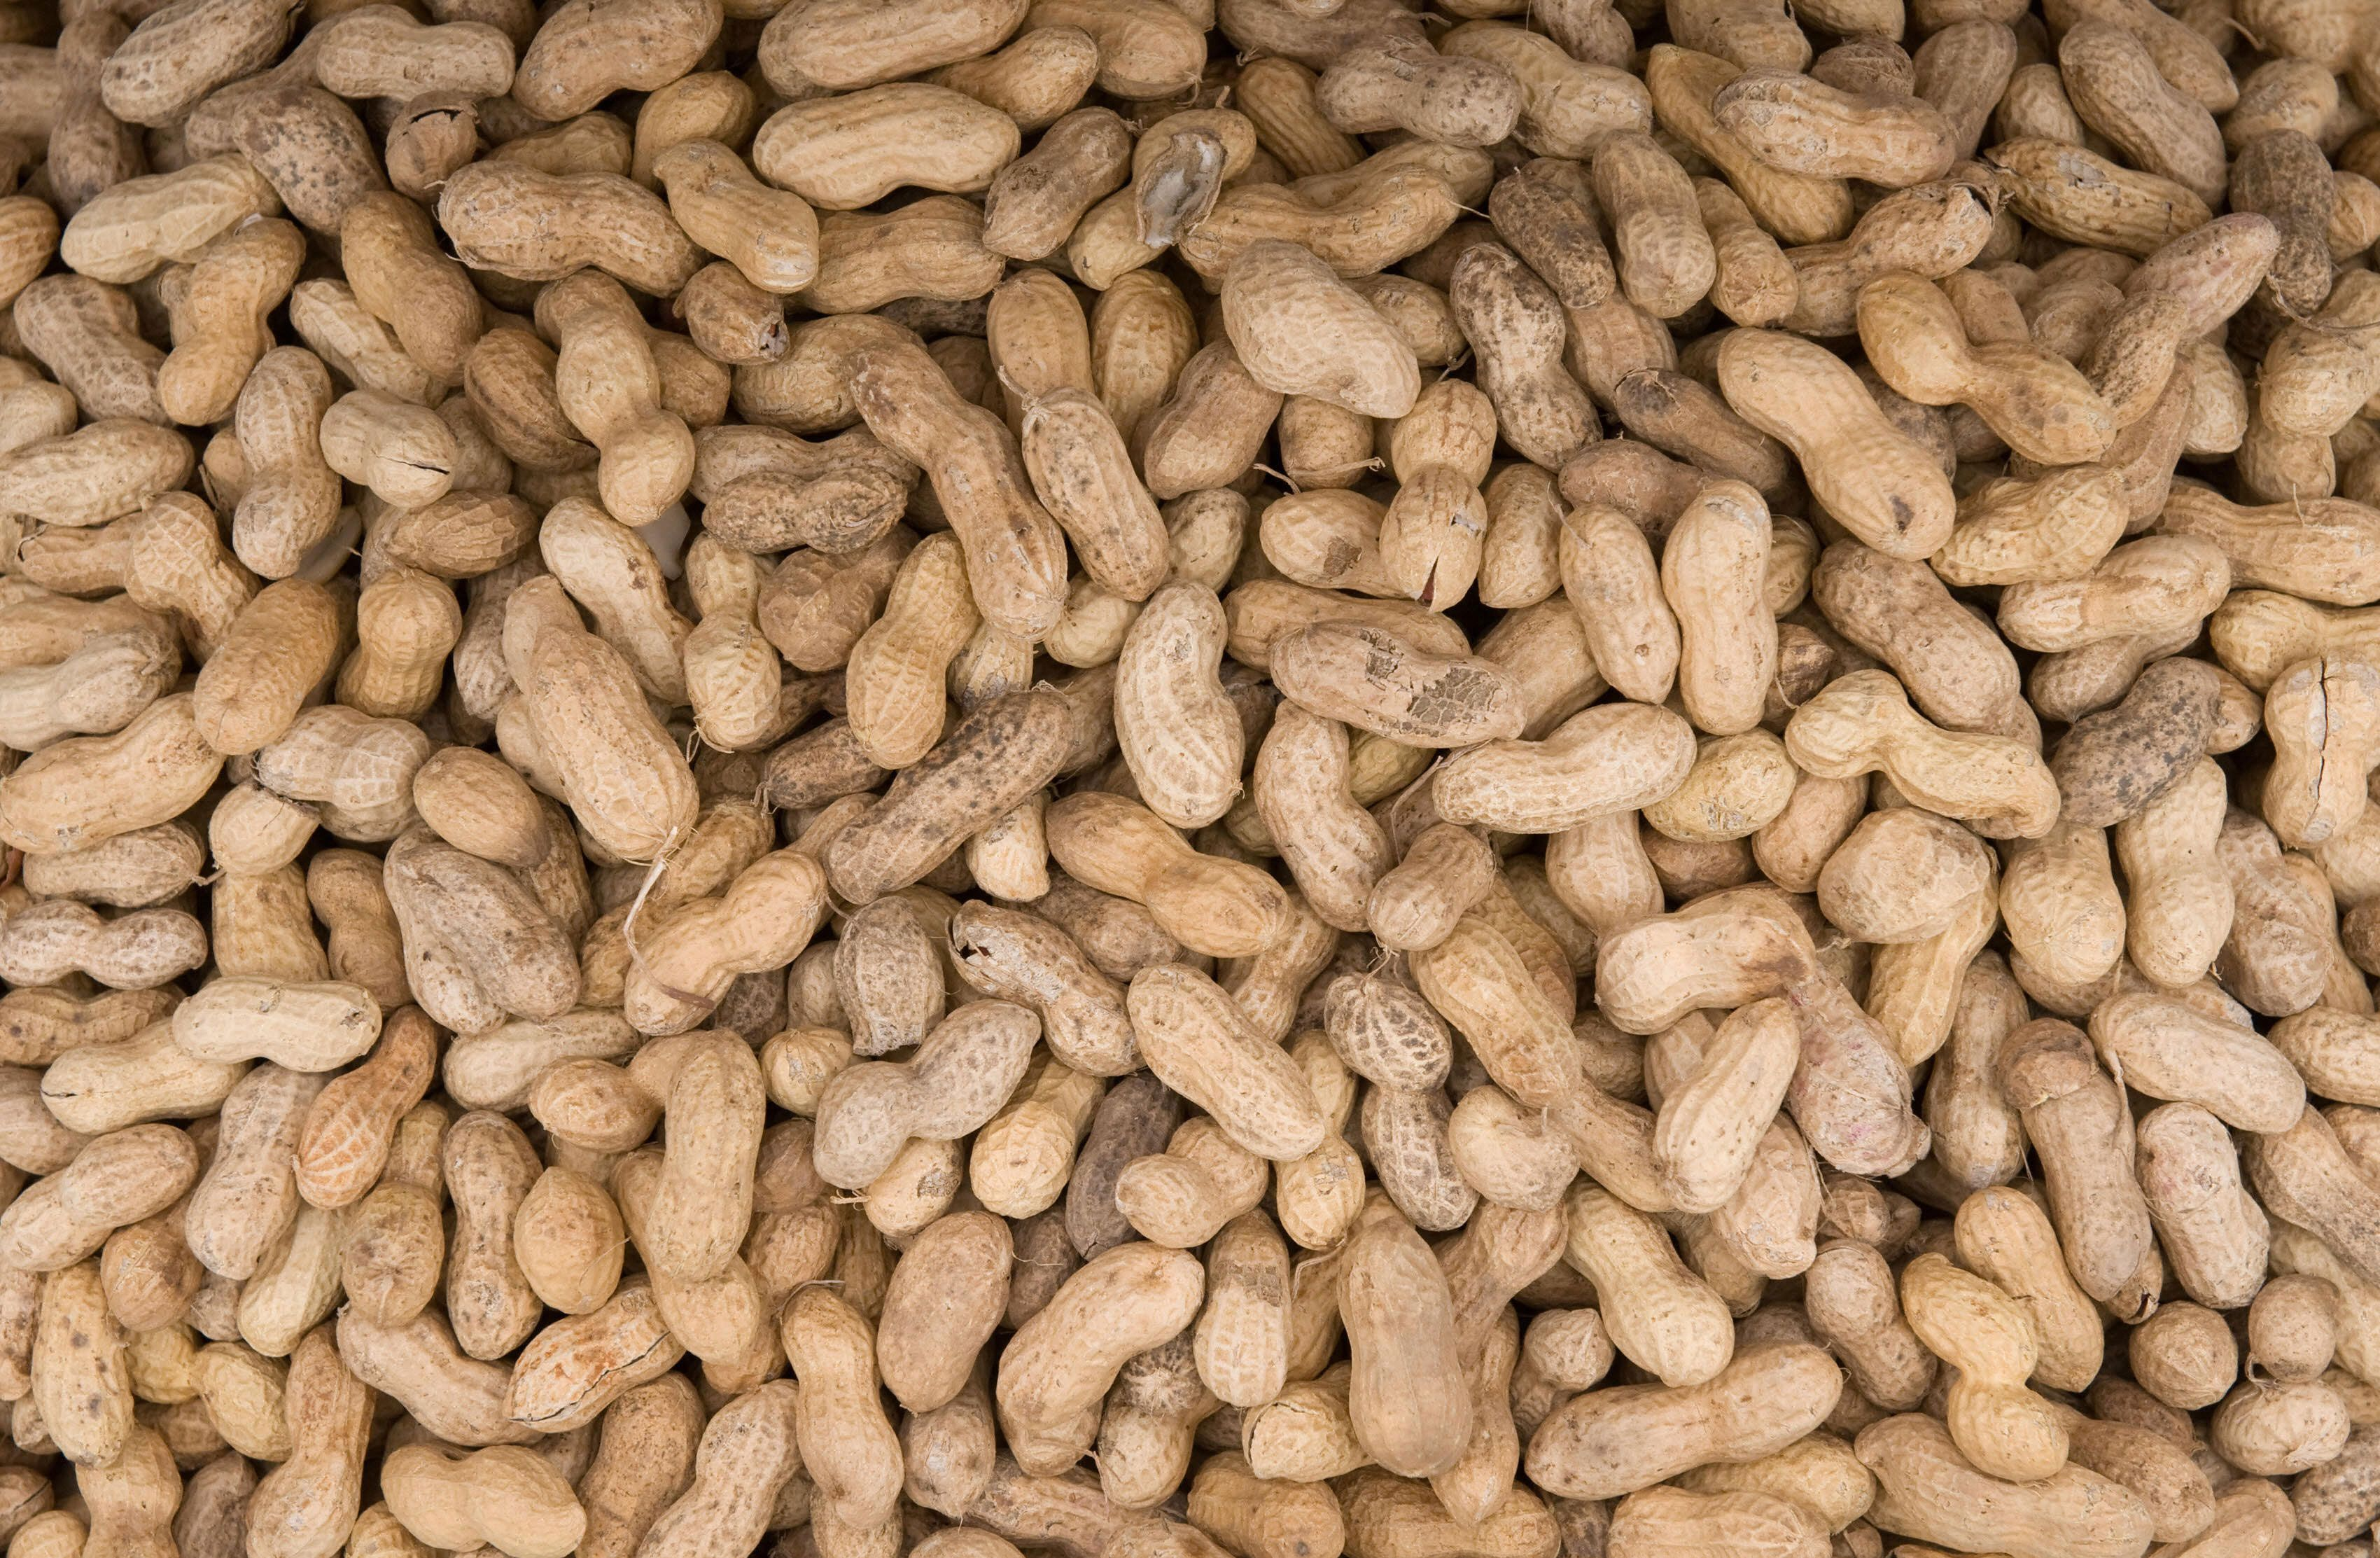 Peanuts are offered for sale at Eastern